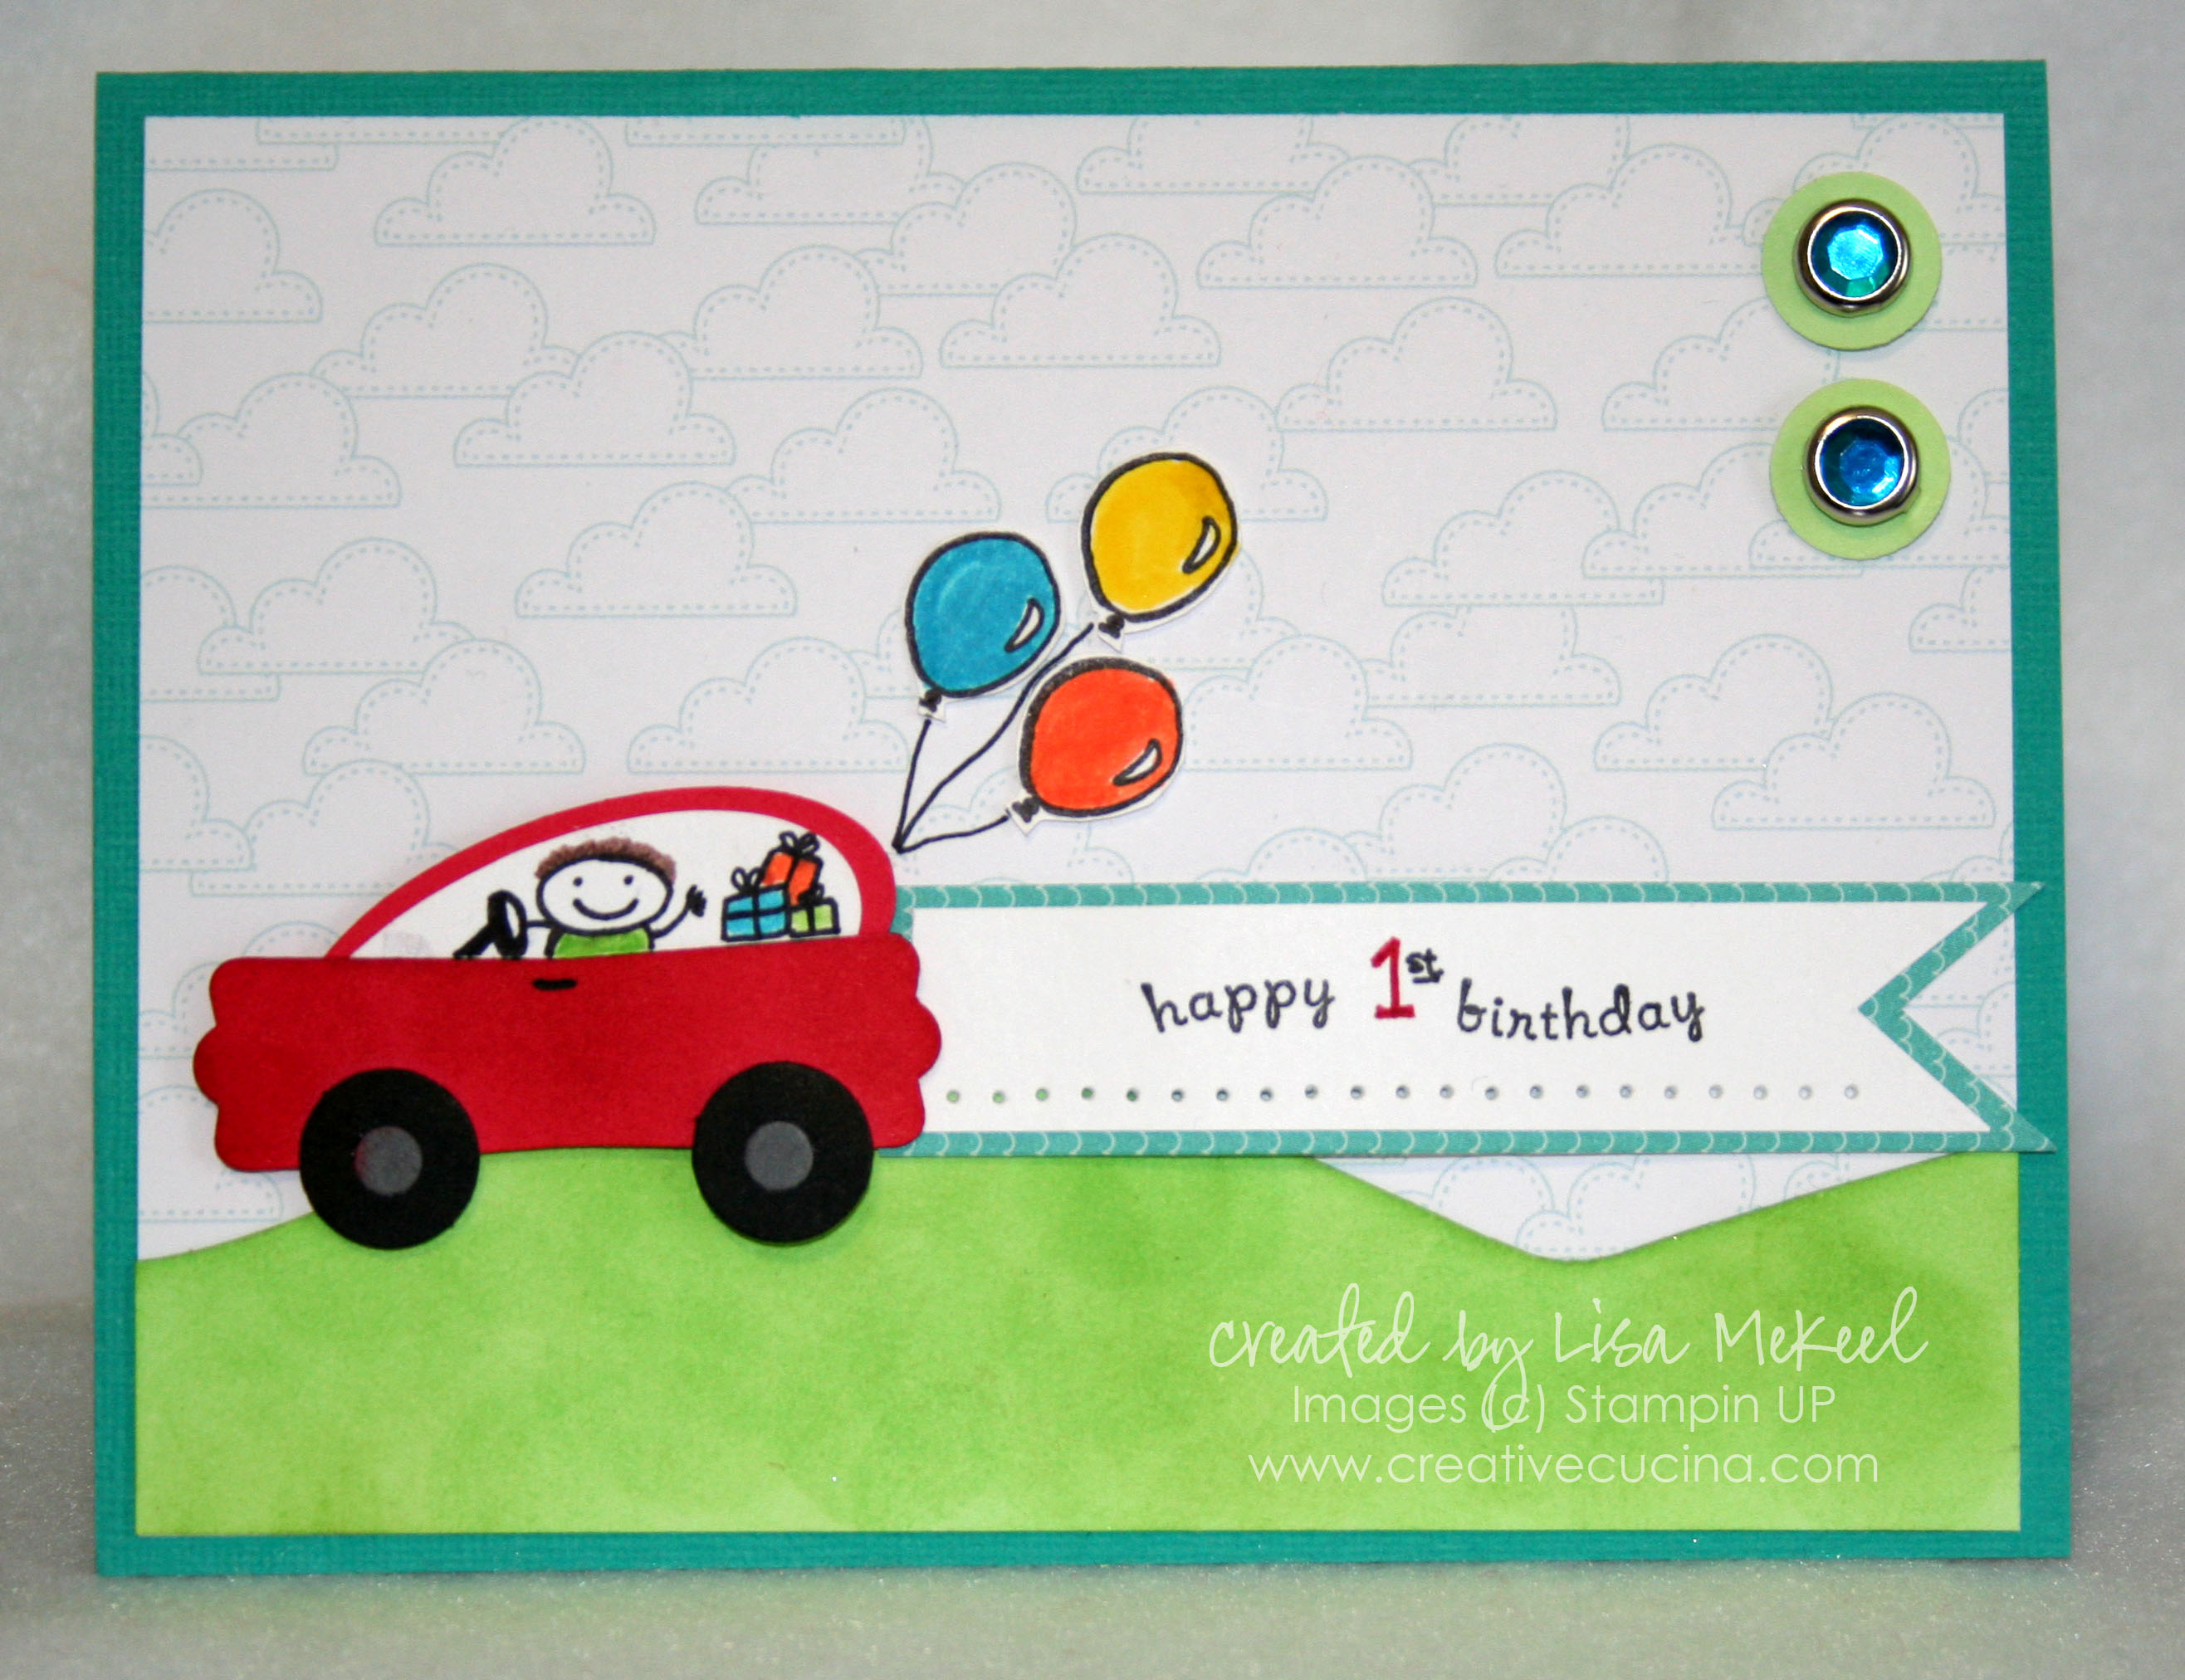 Stampin Up Punch Art Car Card for Boy s Birthday